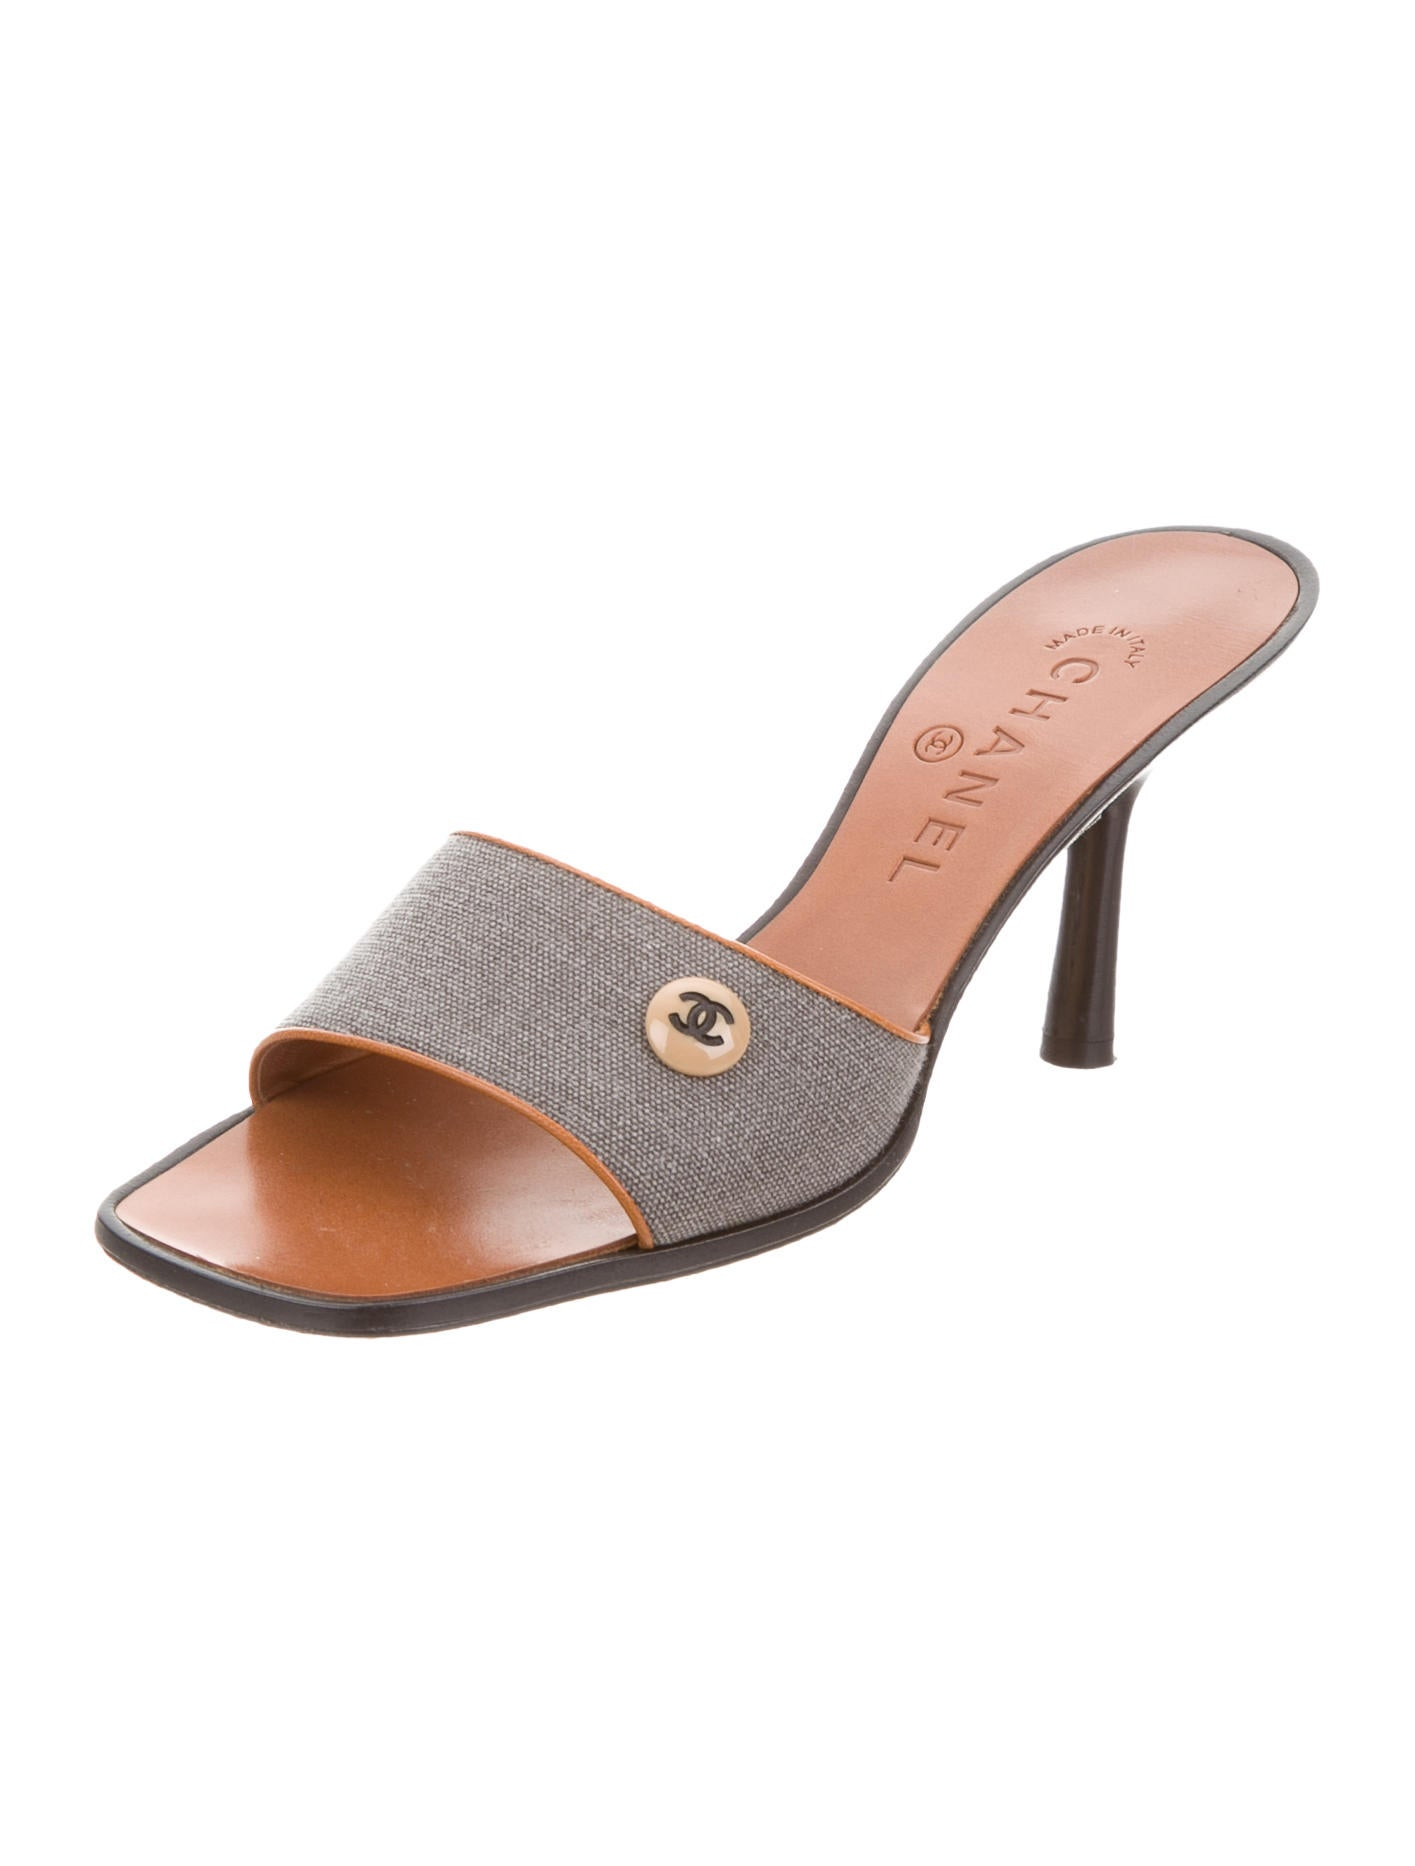 chanel canvas slide sandals shoes cha186057 the realreal